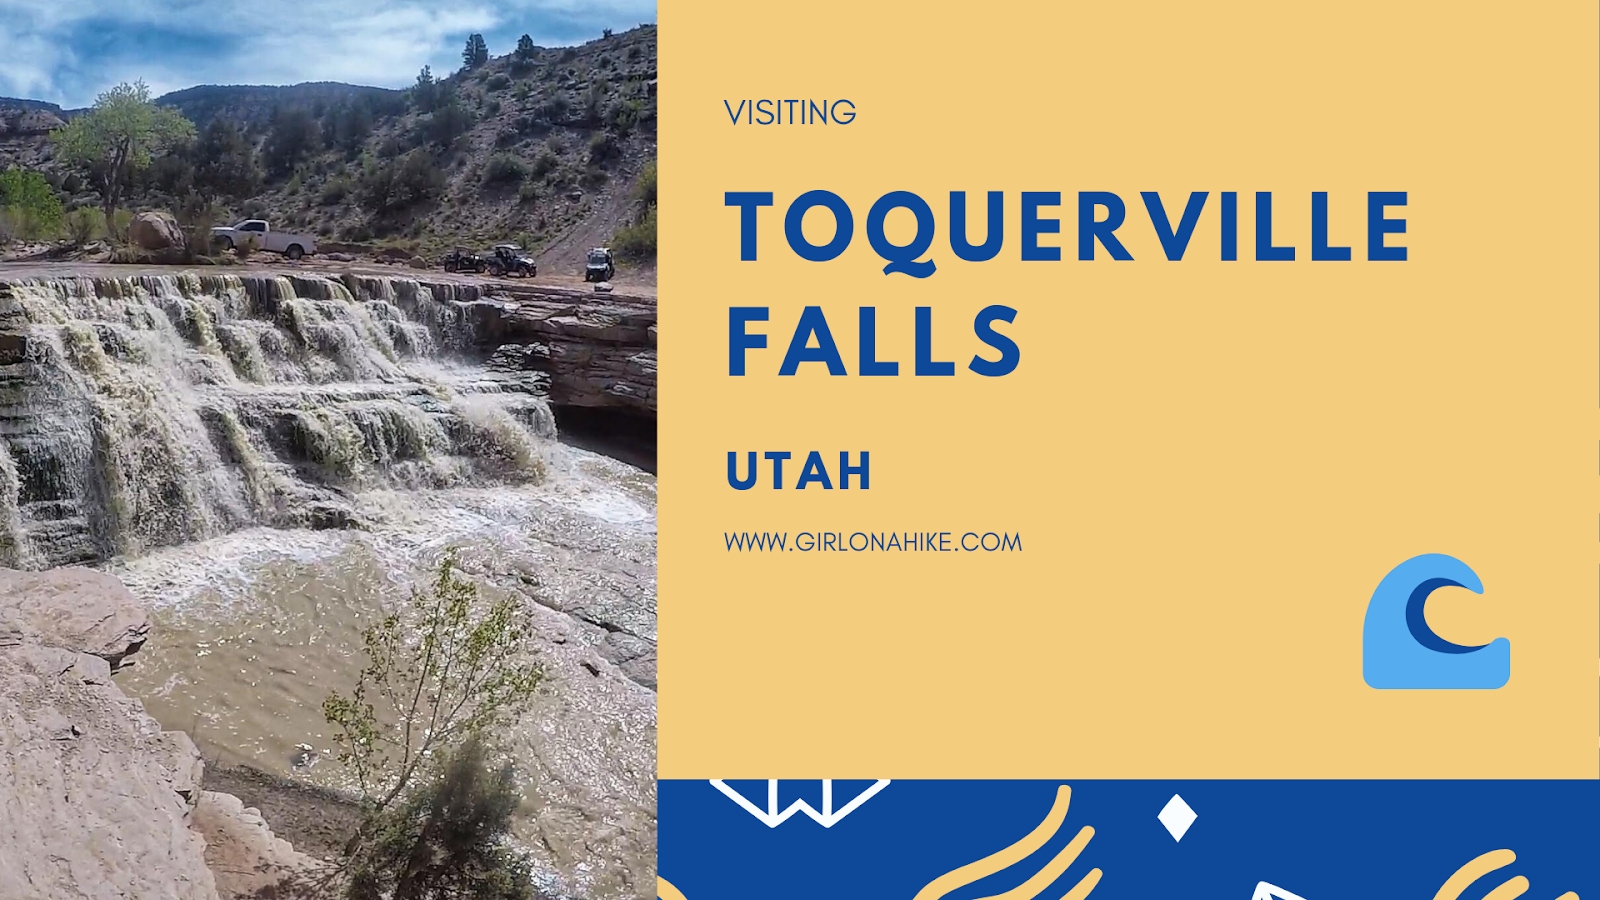 Visiting Toquerville Falls, The Best Dog Friendly Waterfalls Hikes in Utah